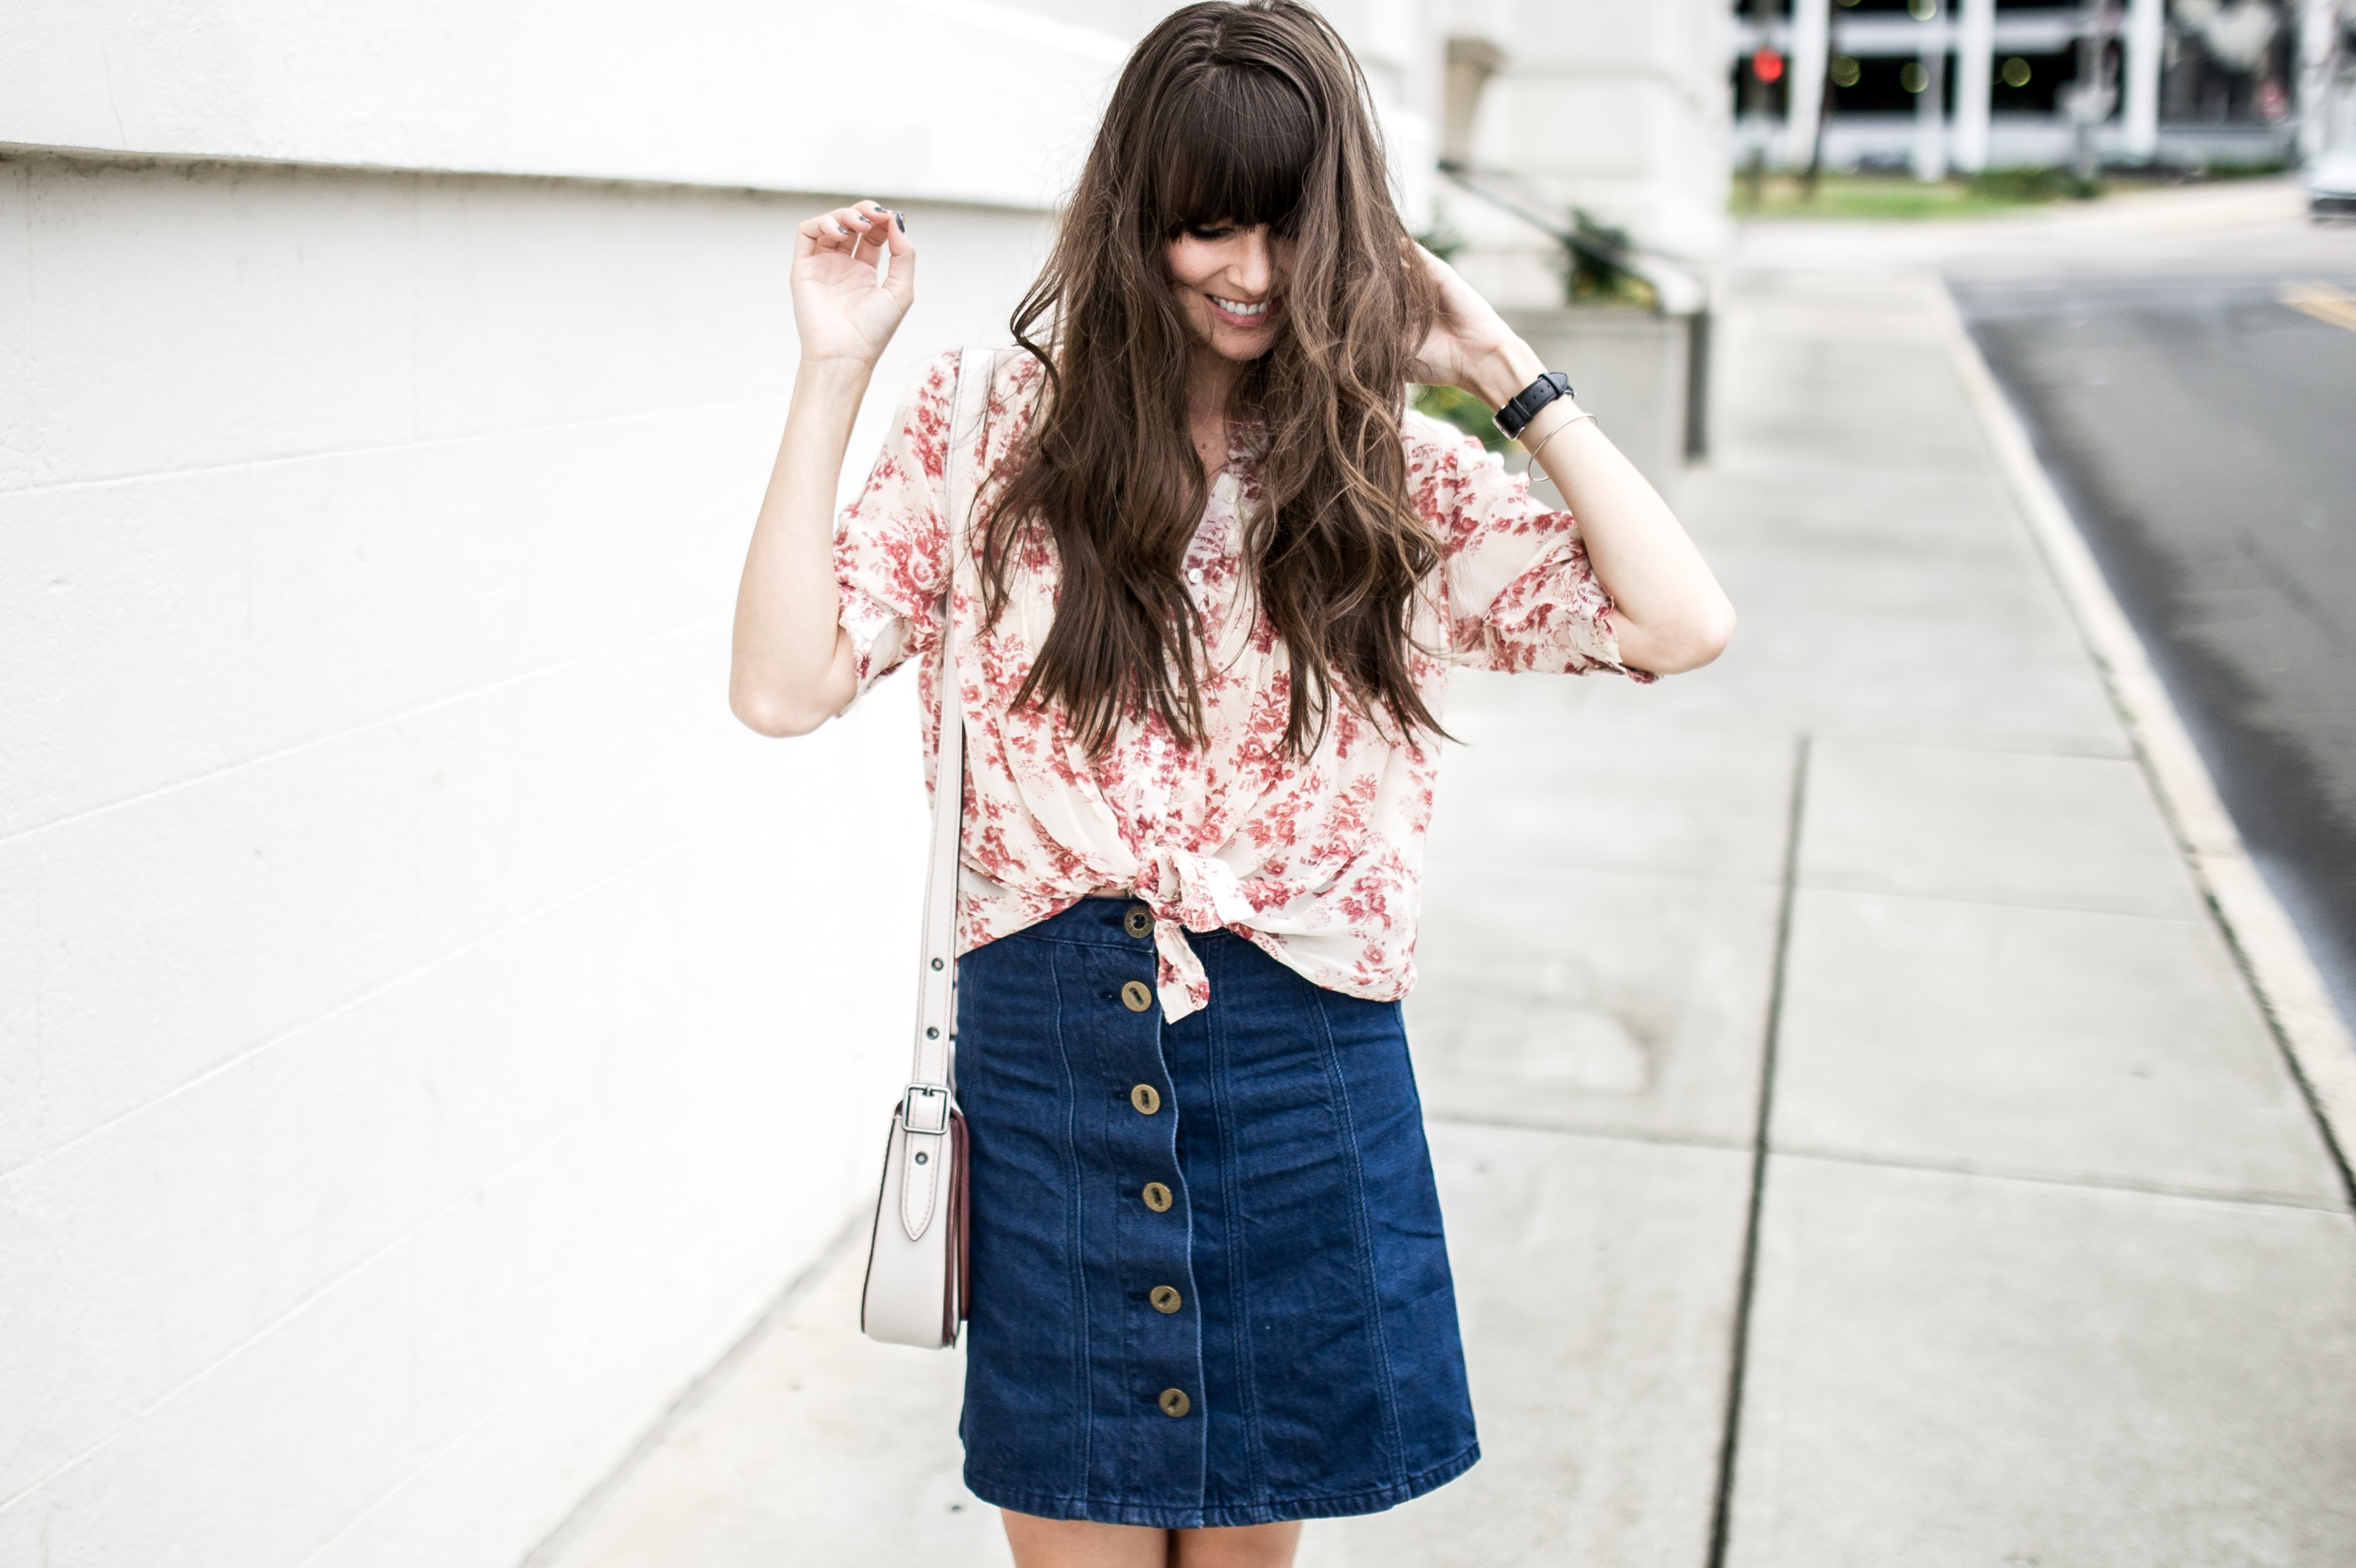 anthropologie denim skirt floral blouse-4